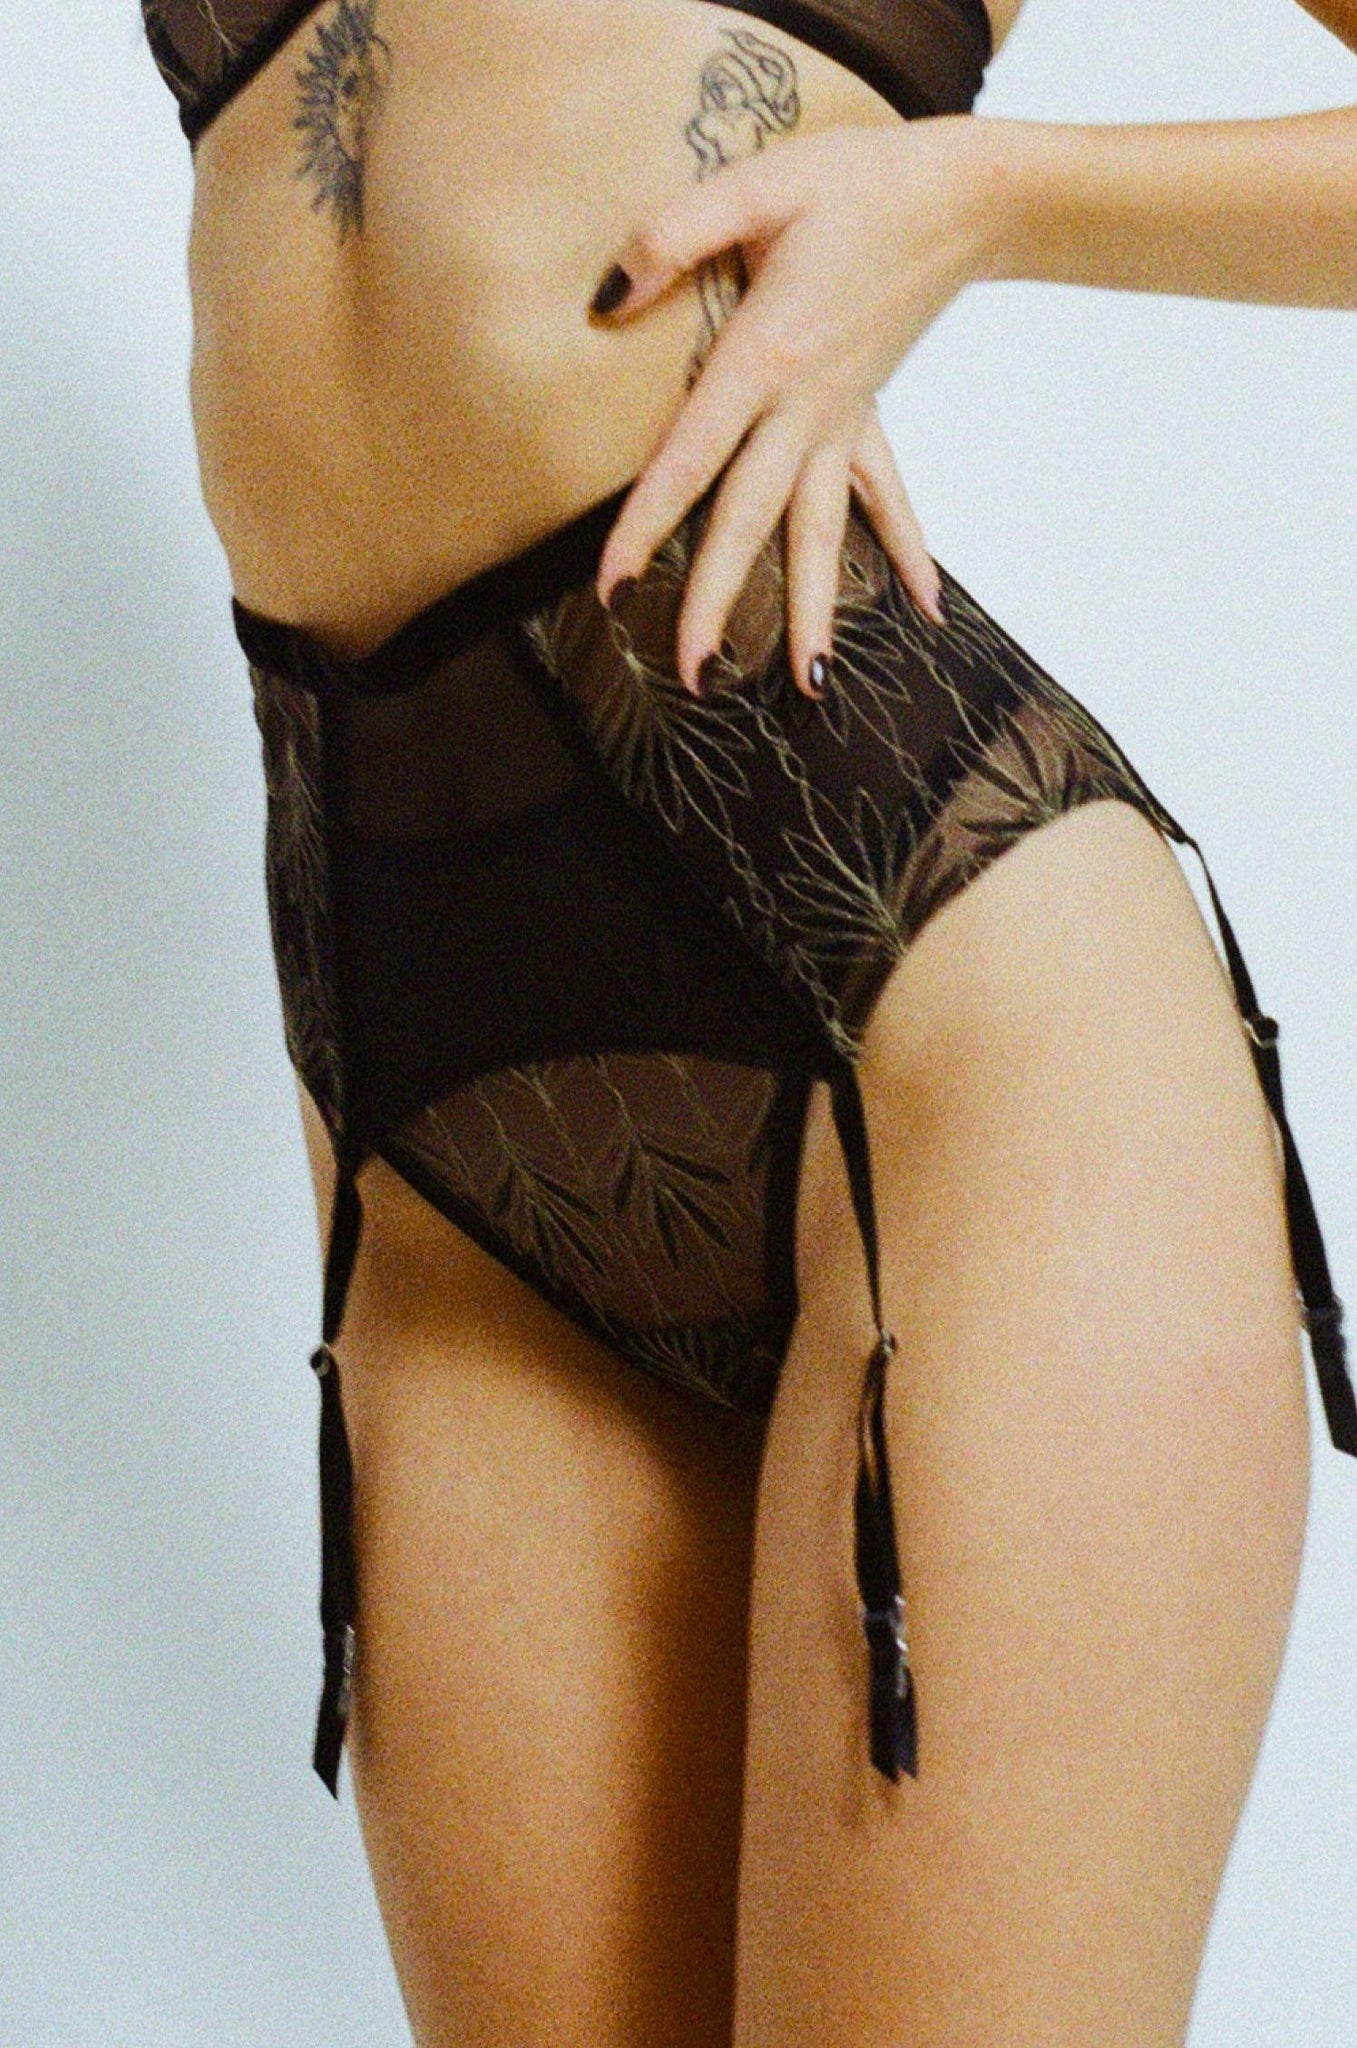 Catherine I suspender belt